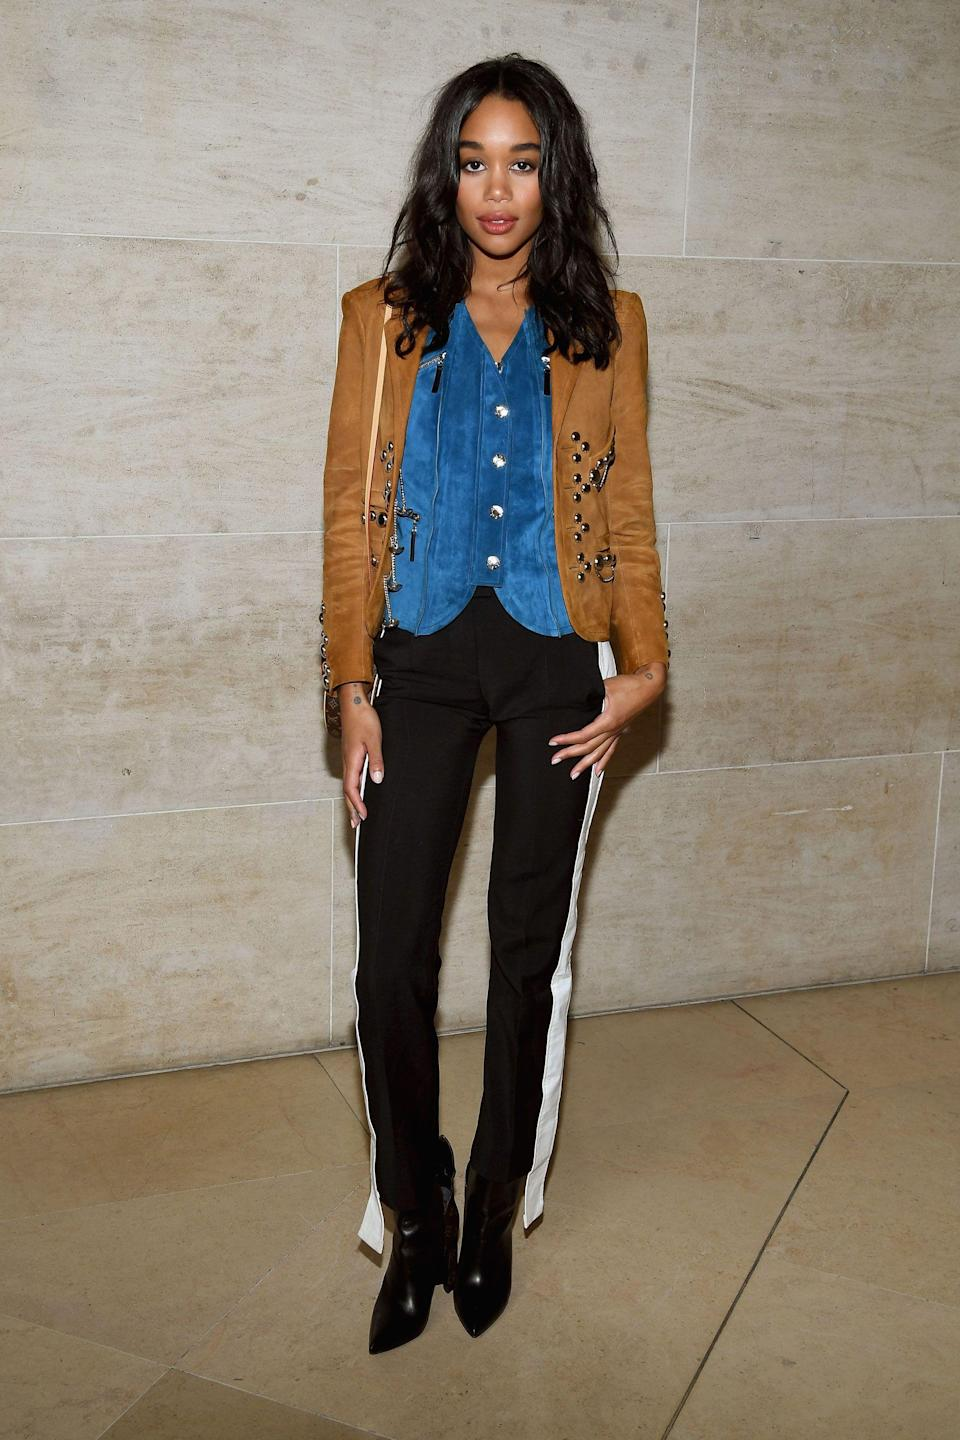 "<p><strong>The Front Row Favorite: Laura Harrier <br></strong> Impossibly gorgeous actress Laura Harrier (just look at that pout and that skin!) recently starred in the <em>Spider-Man</em> reboot. She also happens to be a muse to some of our favorite designers. <a href=""http://www.refinery29.com/2017/02/140405/calvin-klein-raf-simons-fall-2017-america-meaning"" rel=""nofollow noopener"" target=""_blank"" data-ylk=""slk:Raf Simons' Calvin Klein debut"" class=""link rapid-noclick-resp"">Raf Simons' Calvin Klein debut</a> in February 2017 was the first show Harrier ever attended, but fast-forward a few months later and Simons was custom-making her a dress for the <em>Spider-Man: Homecoming</em> premiere. She now works closely with Nicolas Ghesquière at Louis Vuitton, too.</p><span class=""copyright"">Photo: Pascal Le Segretain/Getty Images</span>"